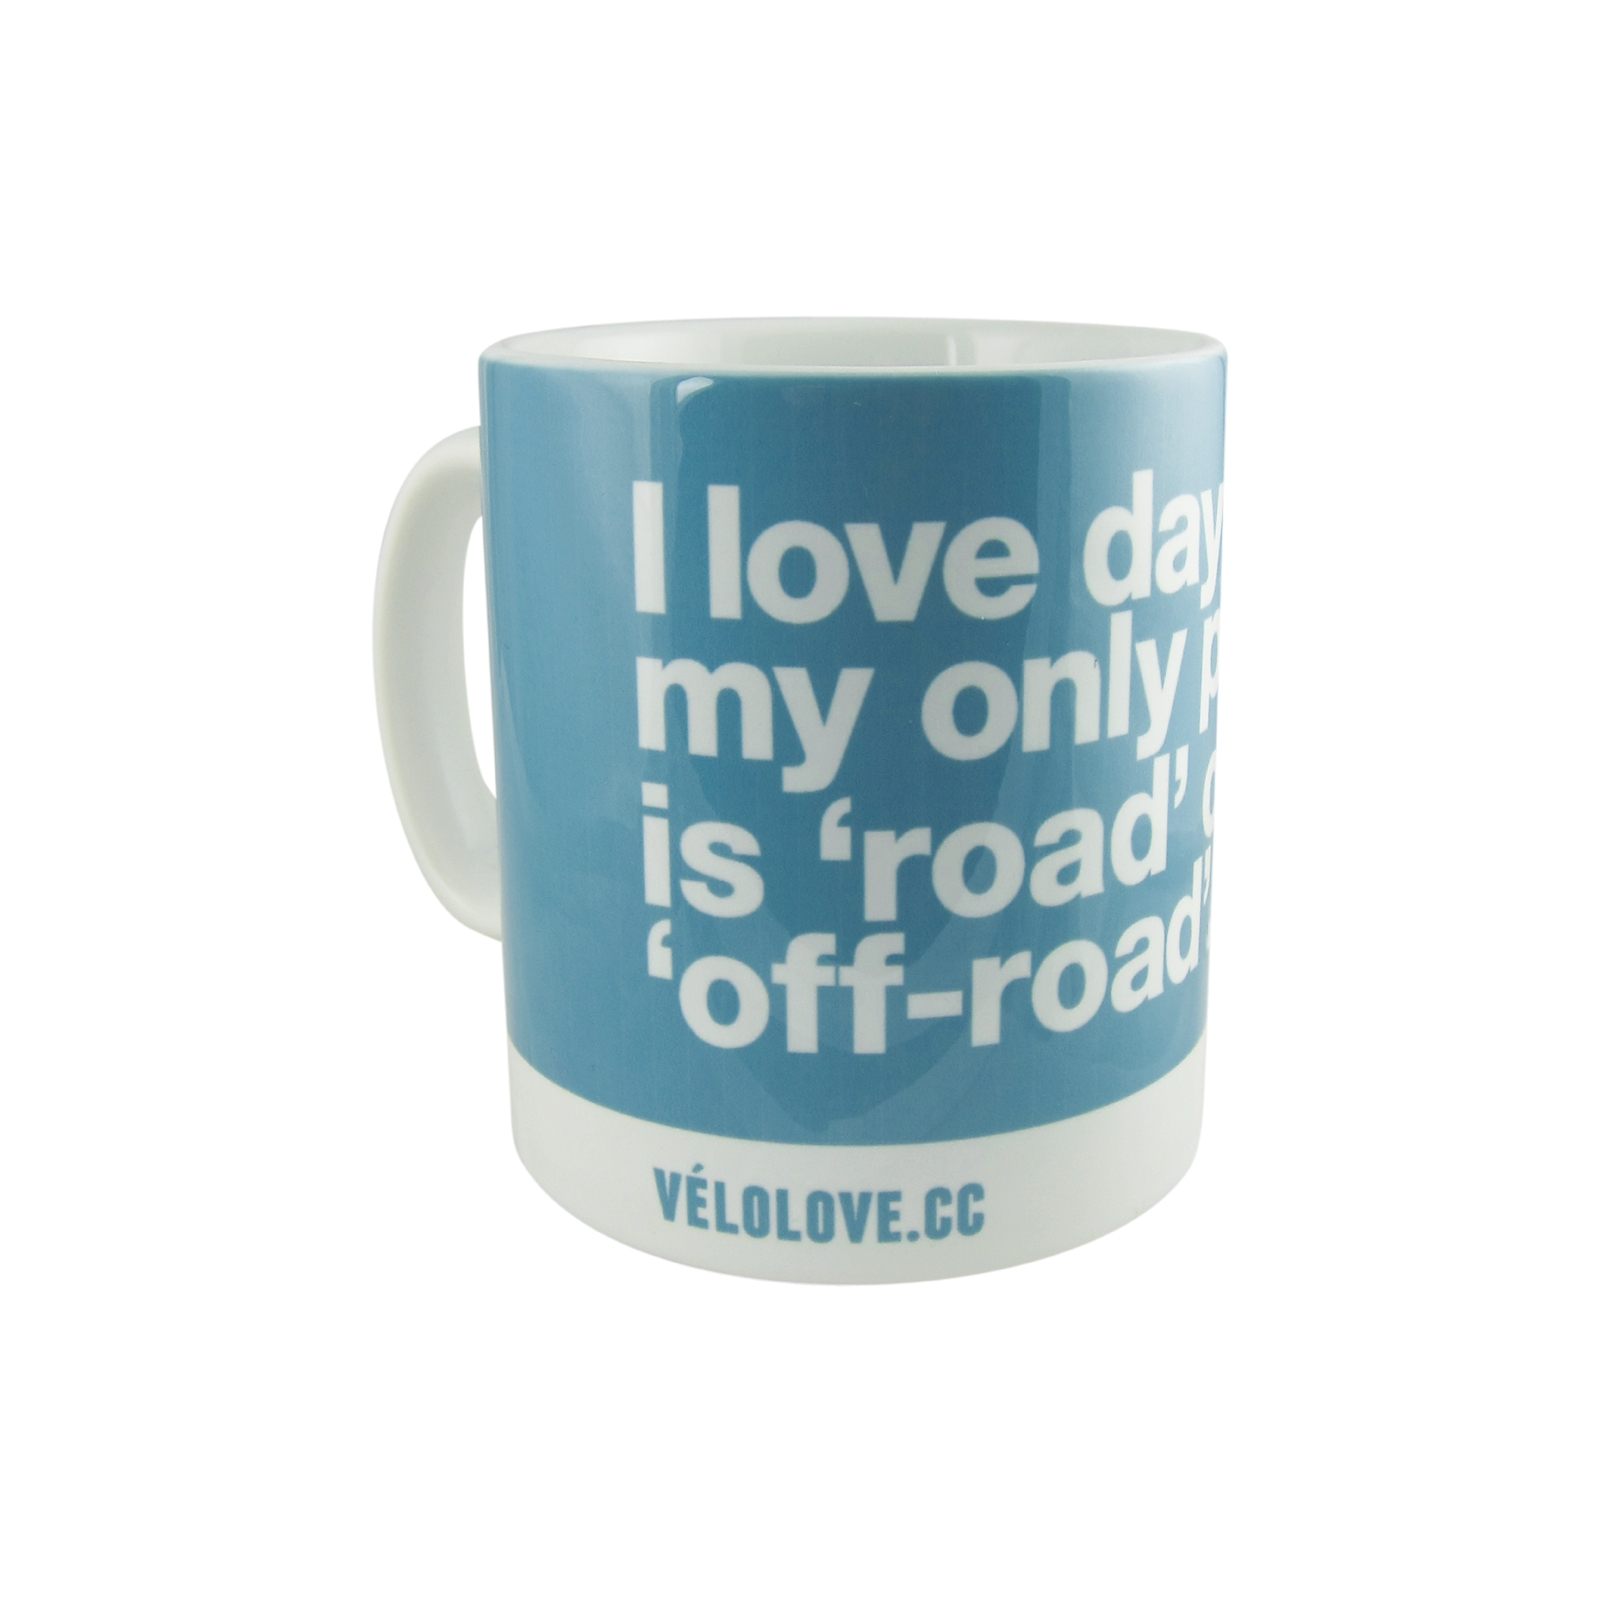 Velolove I love days when my only problem is 'road' or 'off | Multimedier > Tilbehør